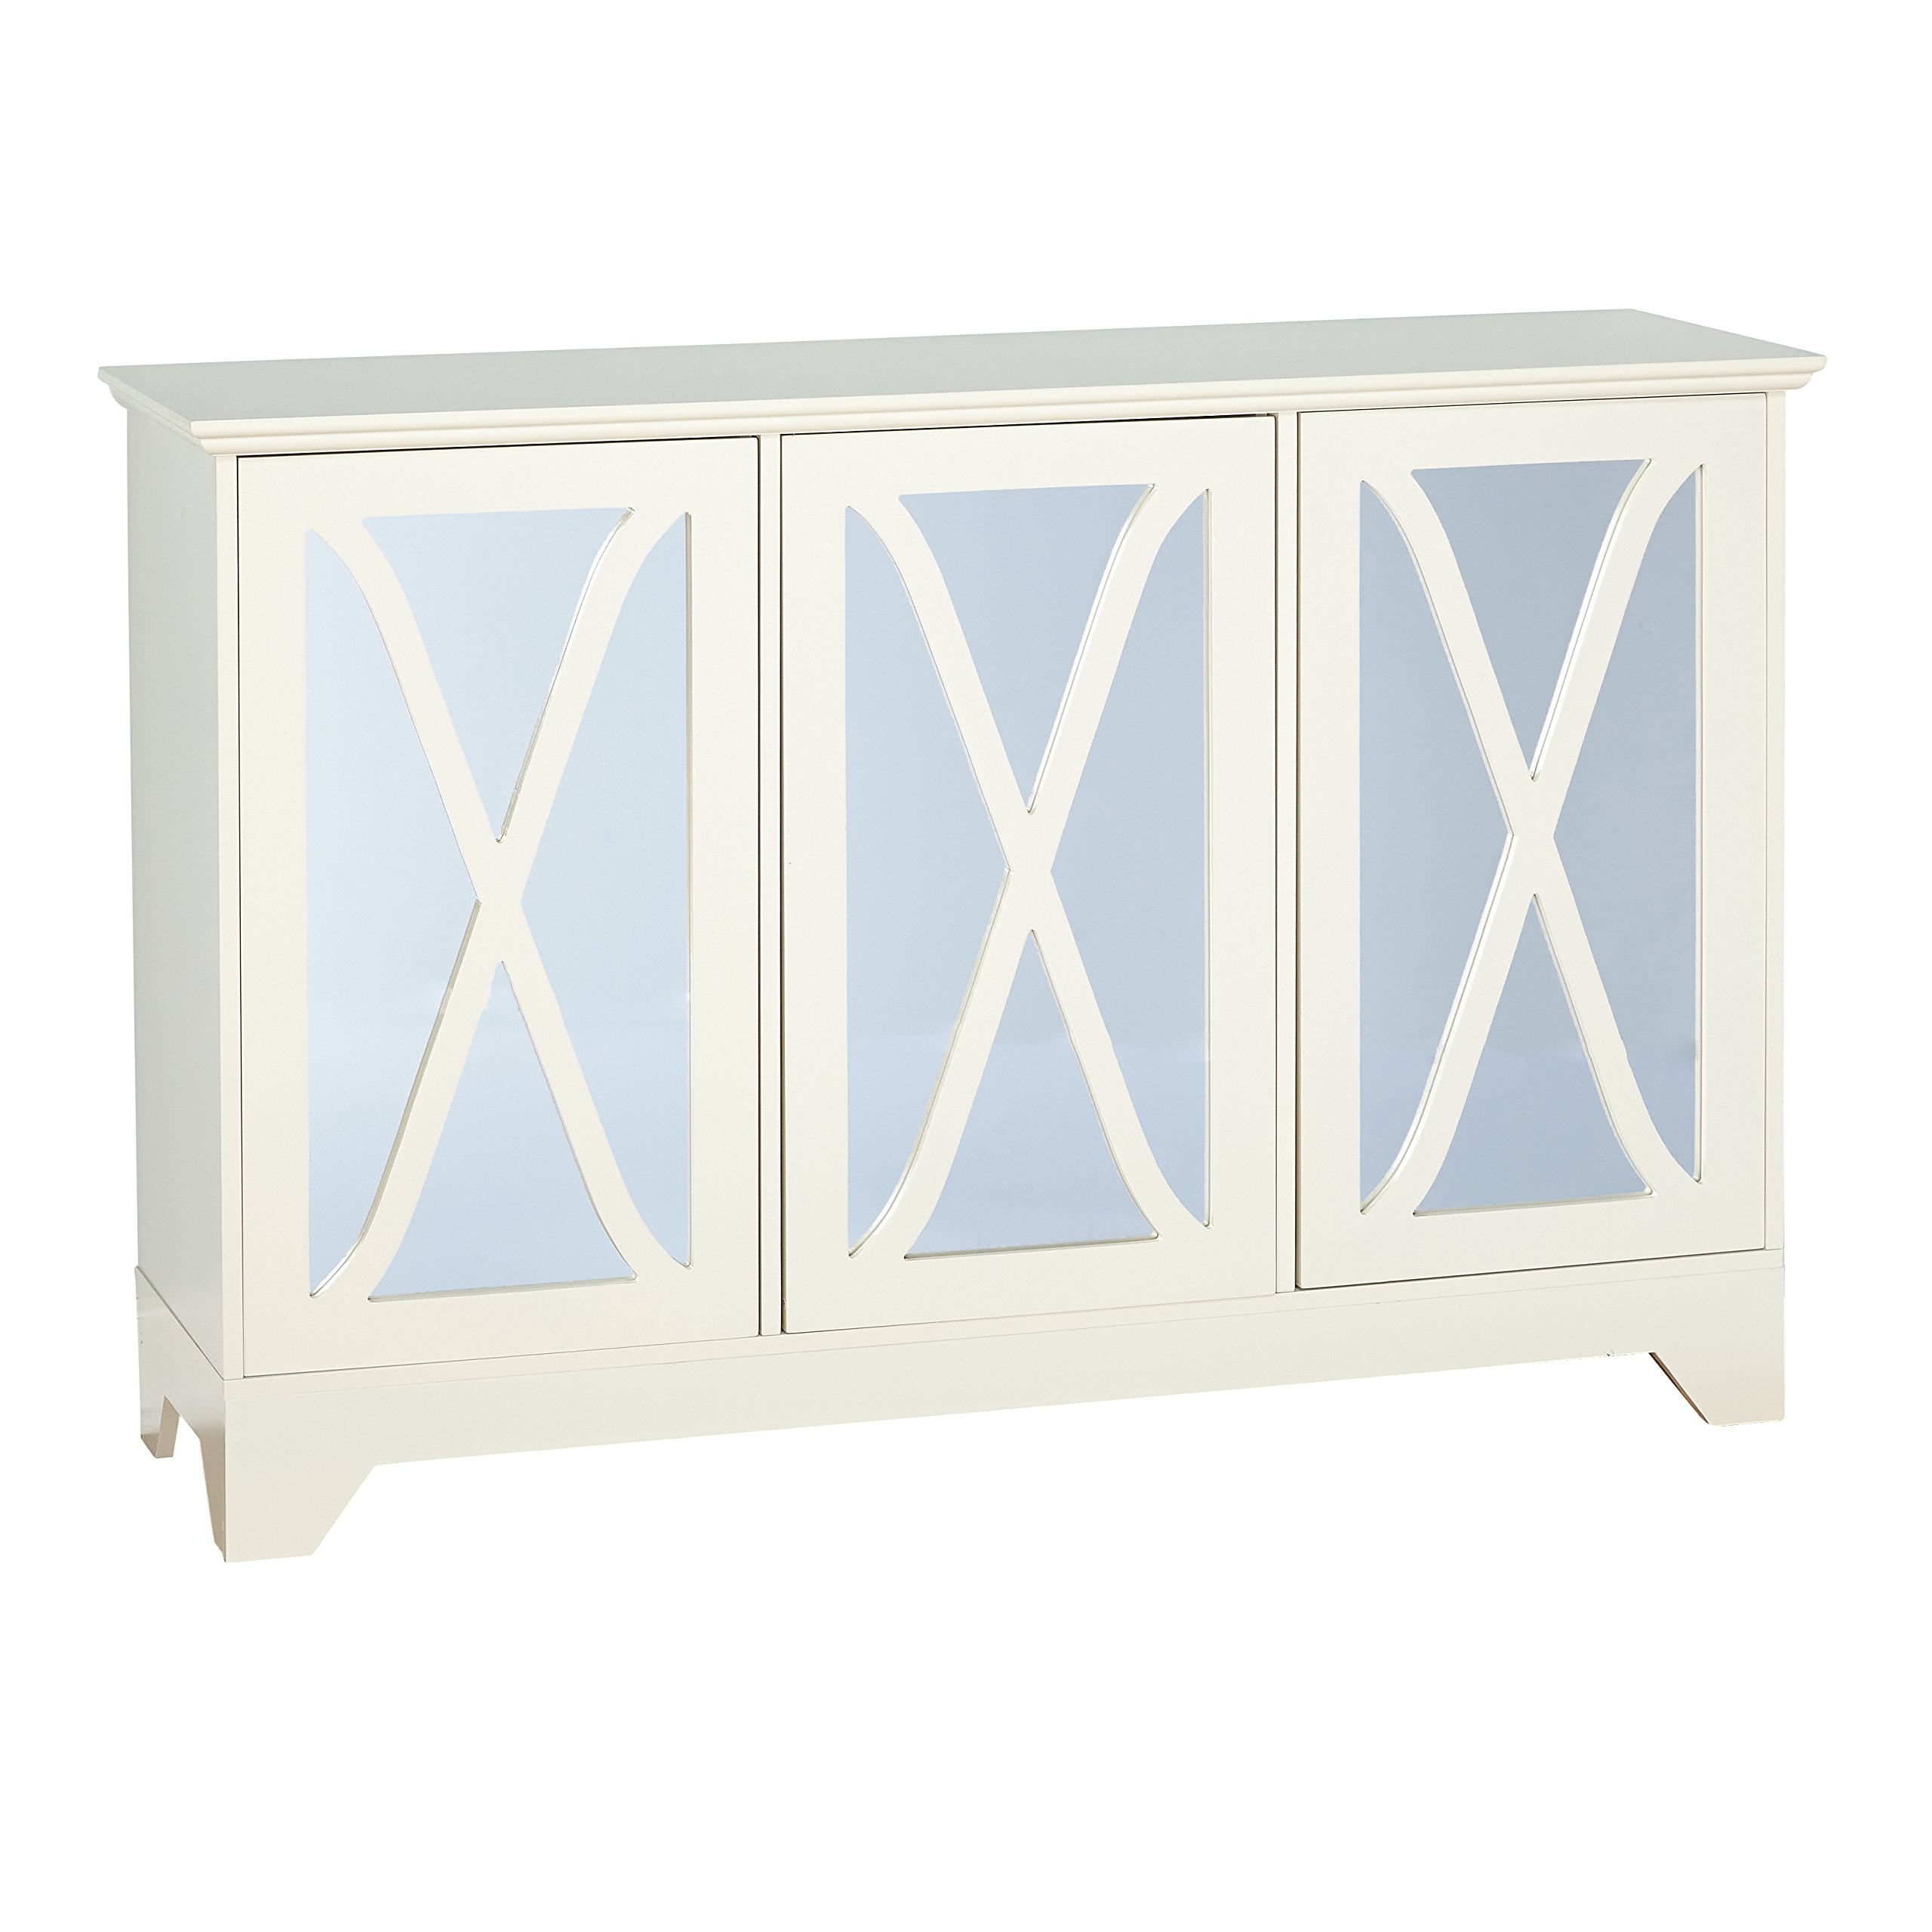 Target Marketing Systems 31552AWH Reflections Buffet/Console with Mirror, White